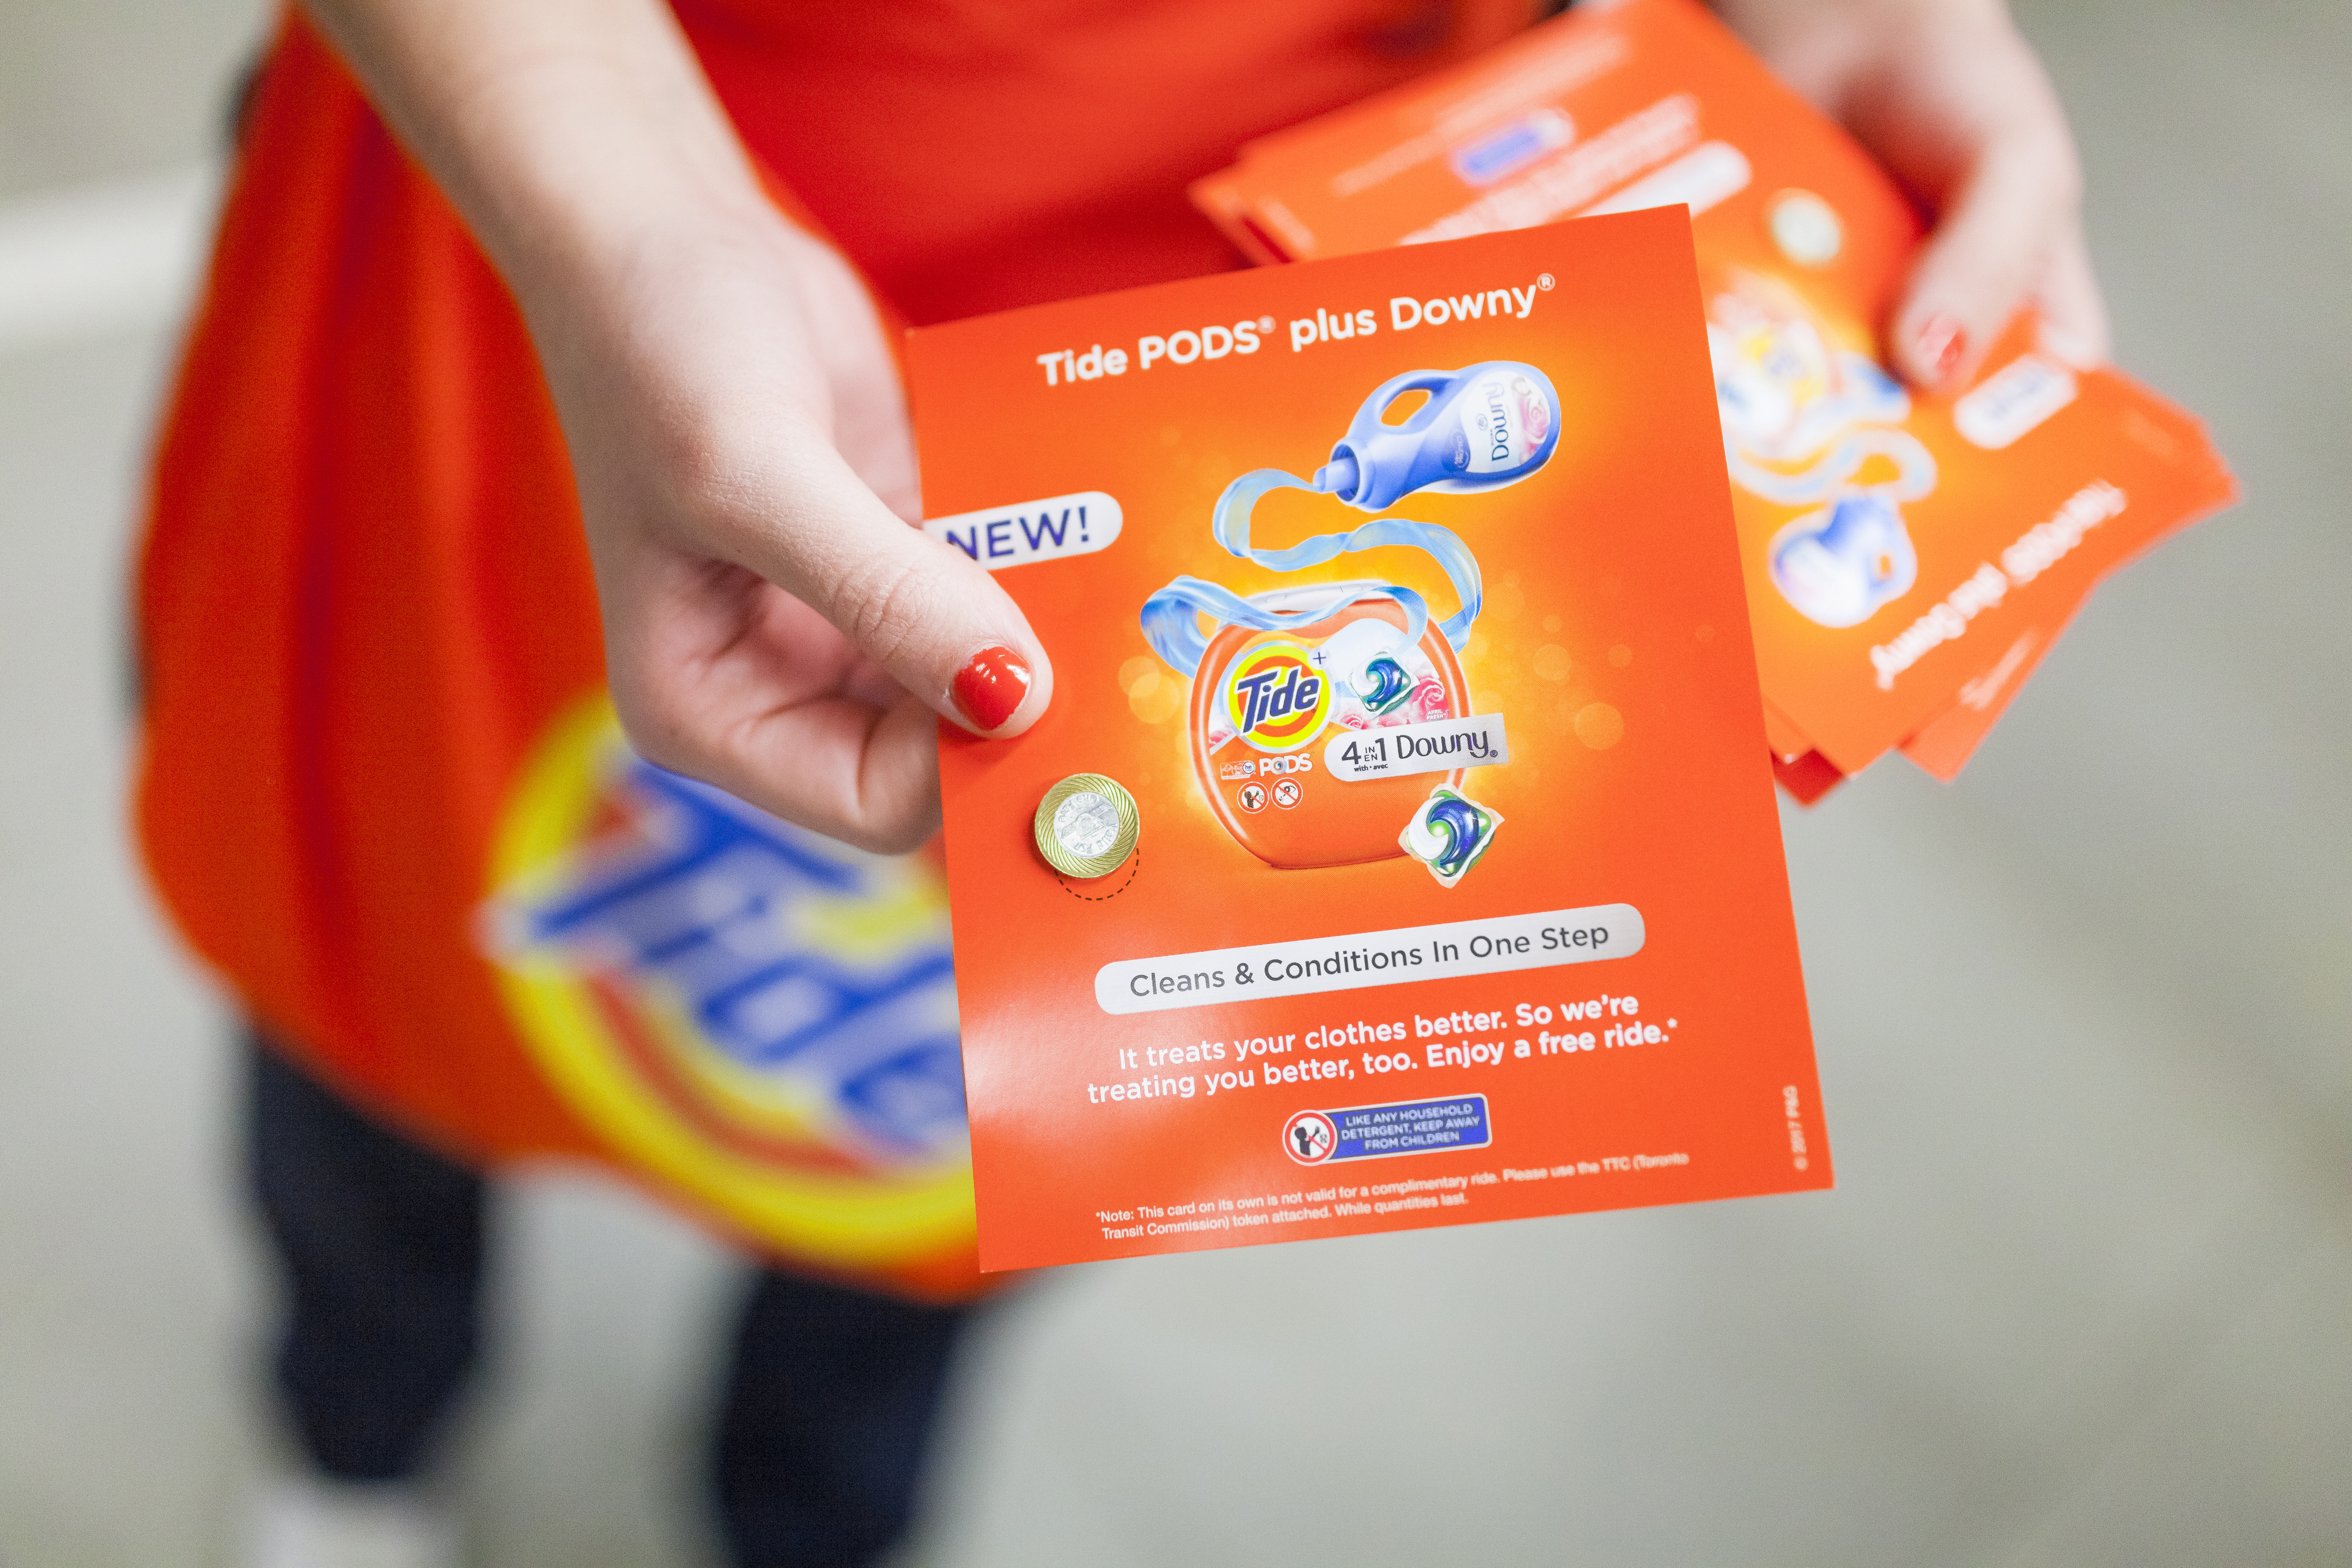 NEW Tide PODS Plus Downy and the TTC are treating Toronto better by handing out free rides at Union Station (Photo: Business Wire)